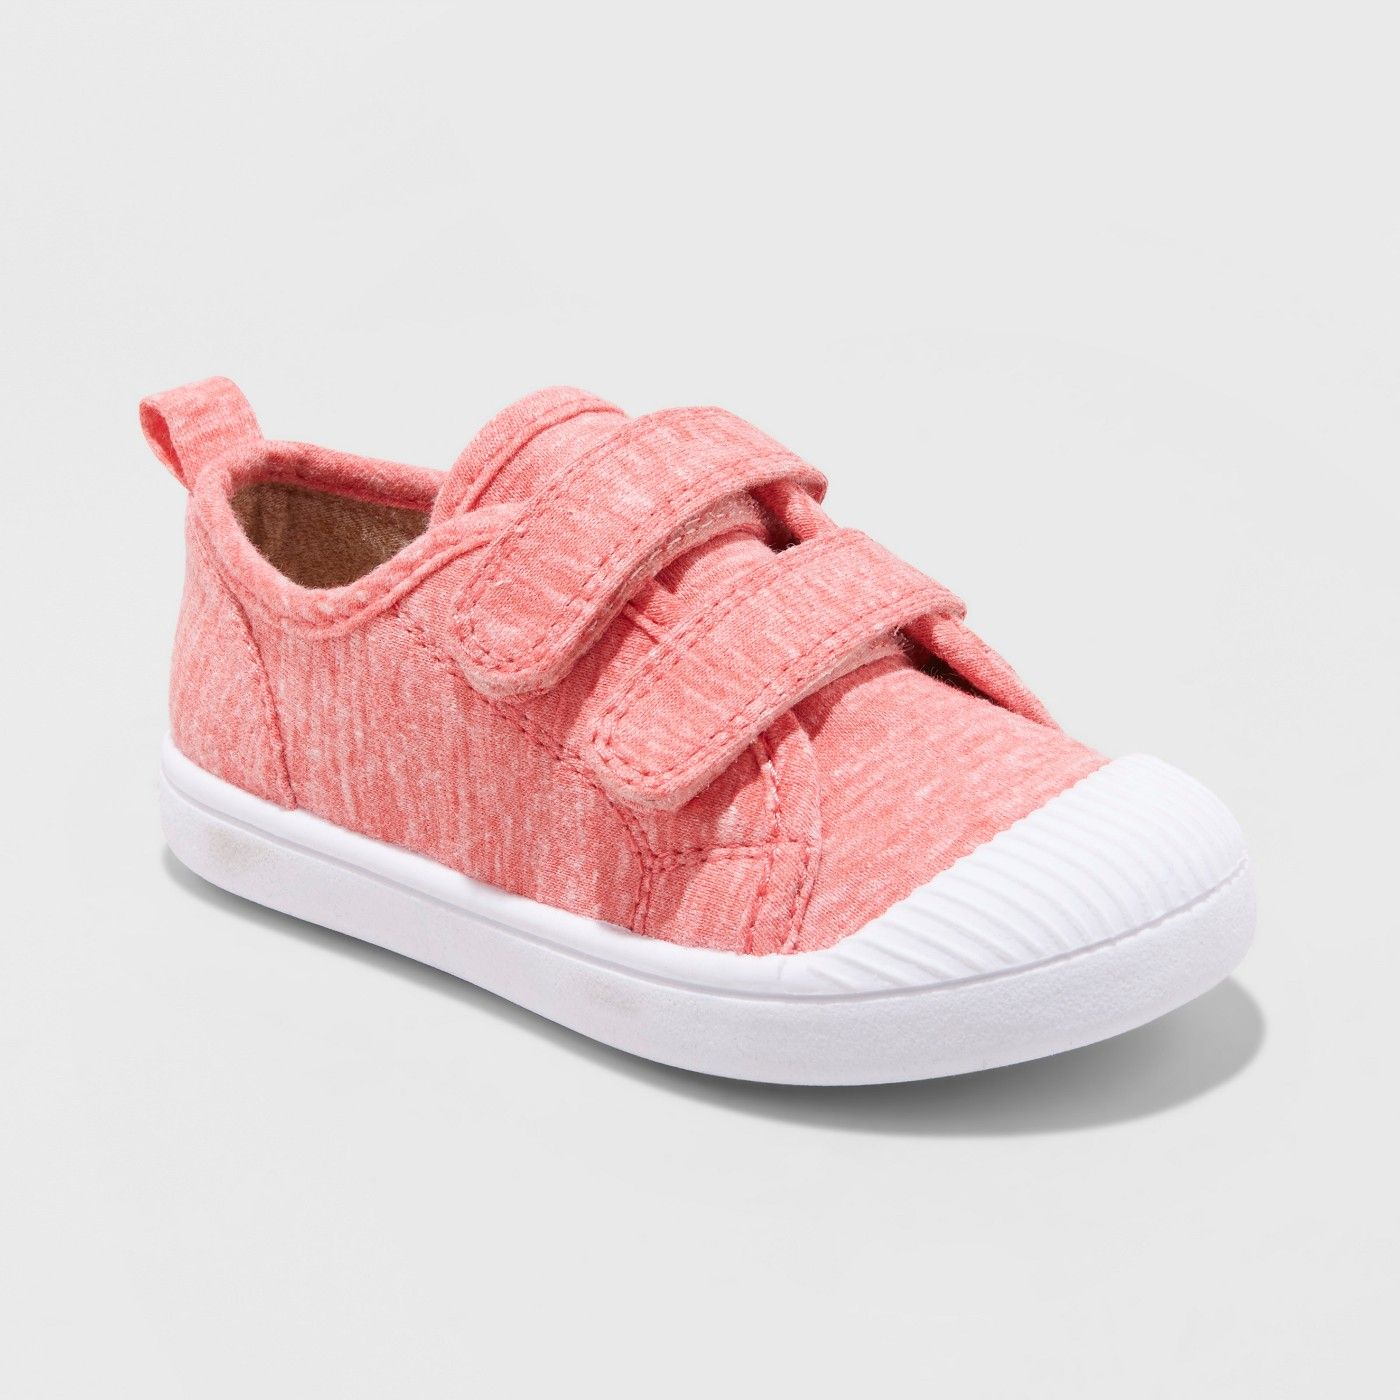 Toddler Girls Estrella Sneakers Cat Jacka Coral Image 1 Of 3 Kids Shoes Near Me Toddler Girl Shoes Toddler Shoes